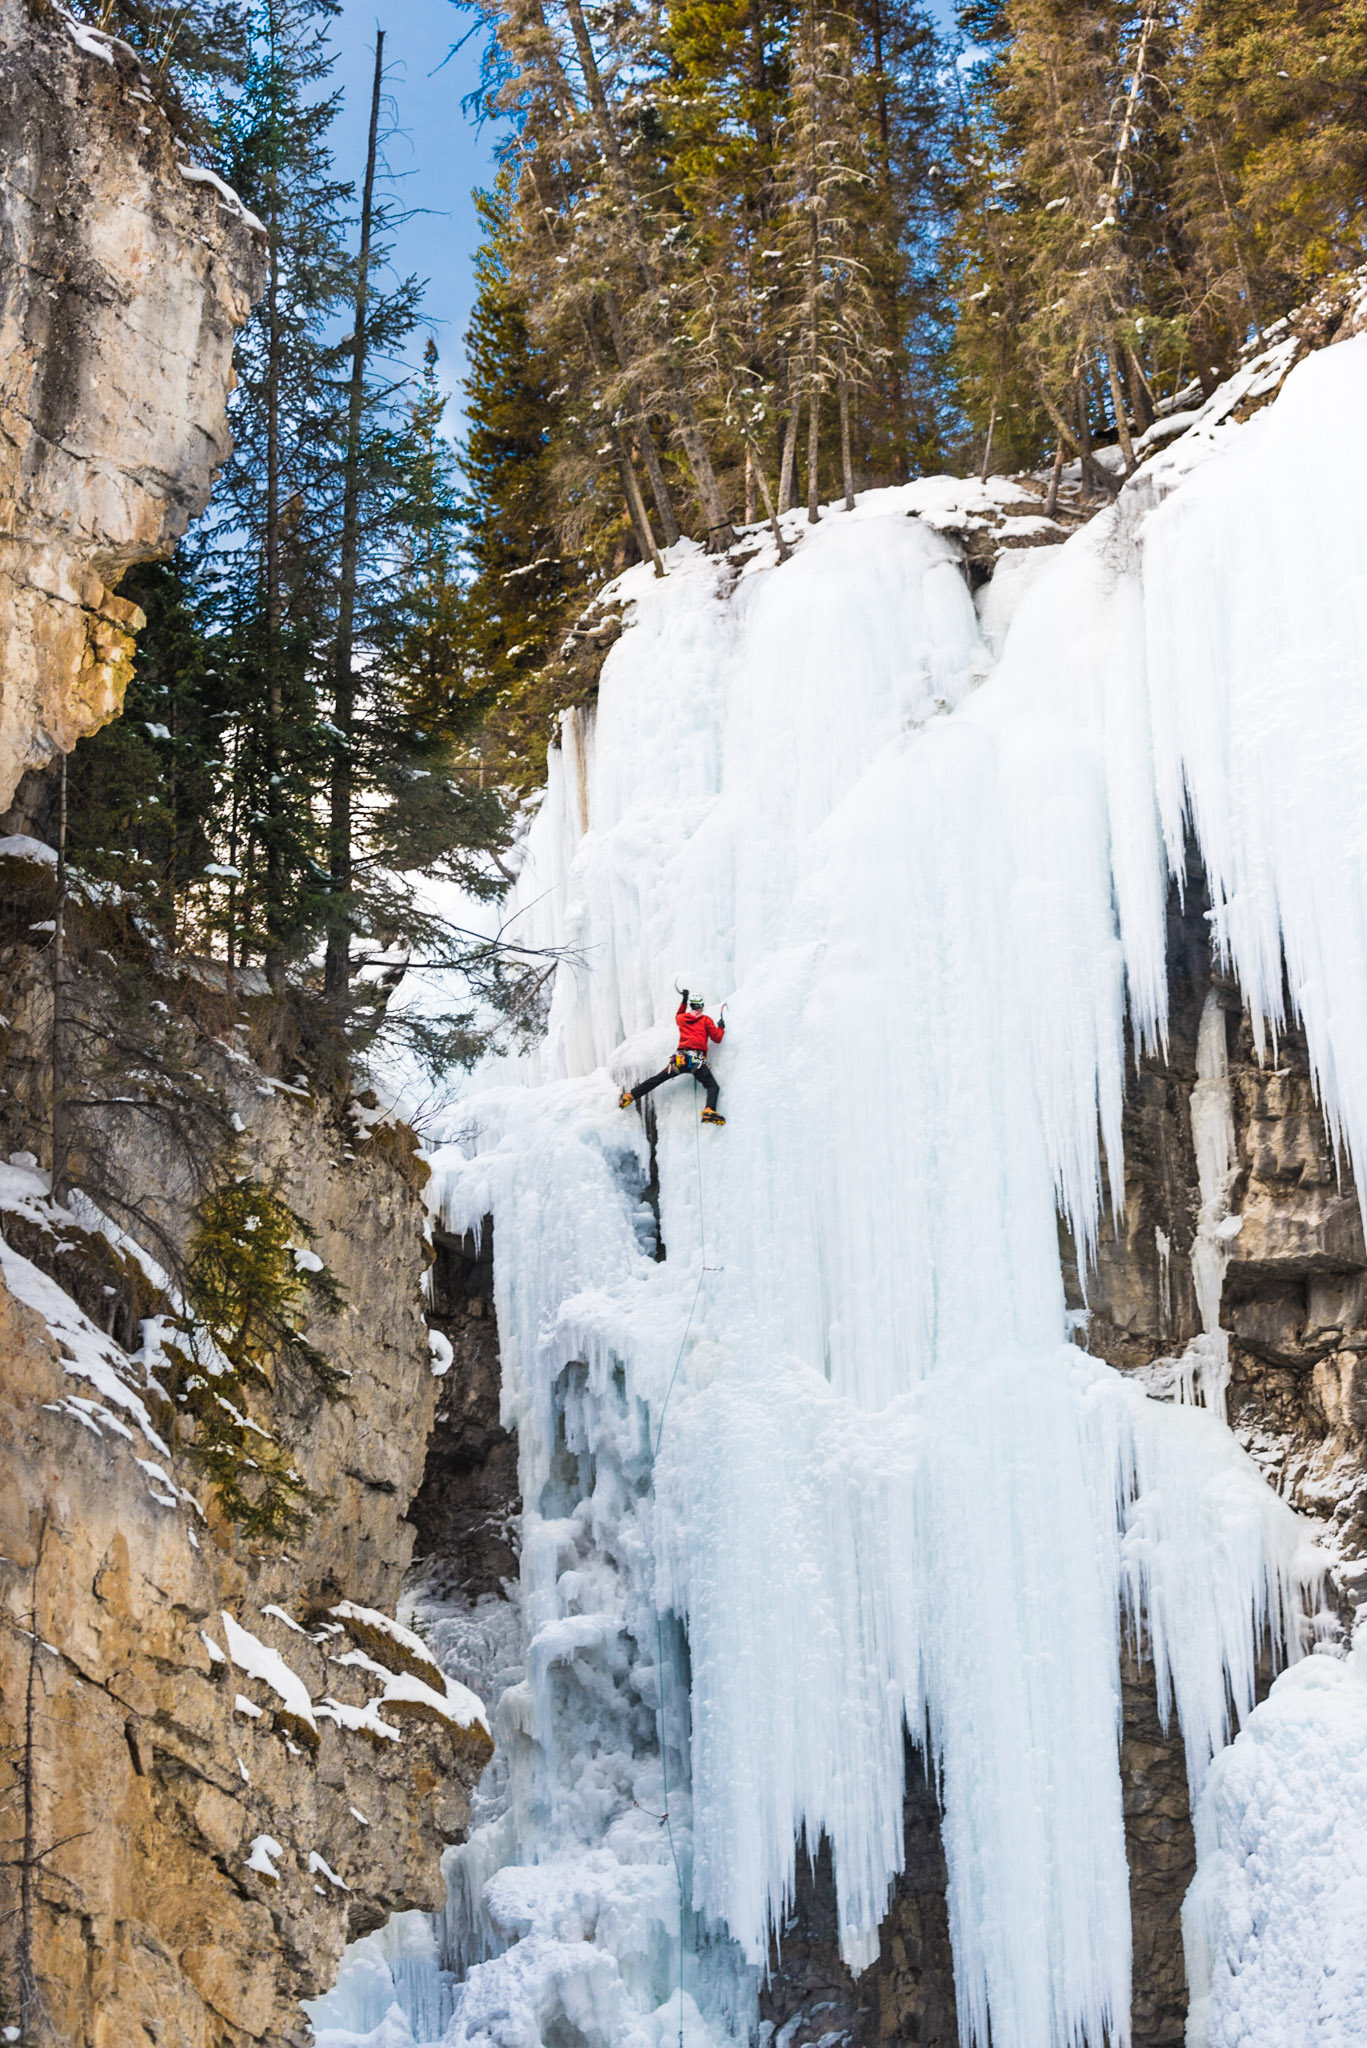 Chelsea Czibere - January 25, 2019 - Johnston Canyon-10.jpg